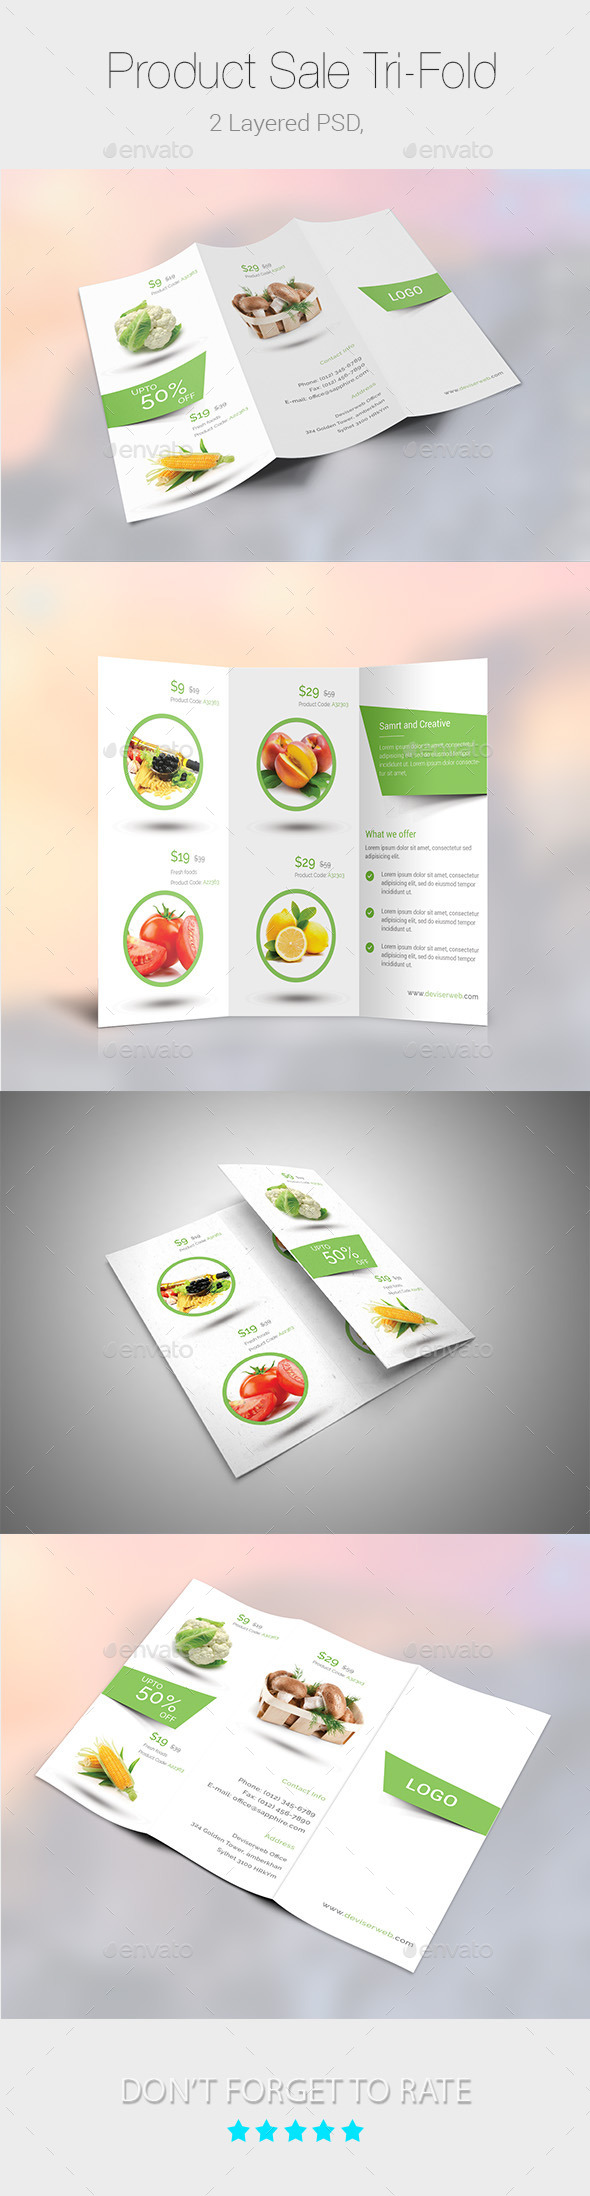 GraphicRiver Product Sale Promotion Tri-Fold Templates 9450212